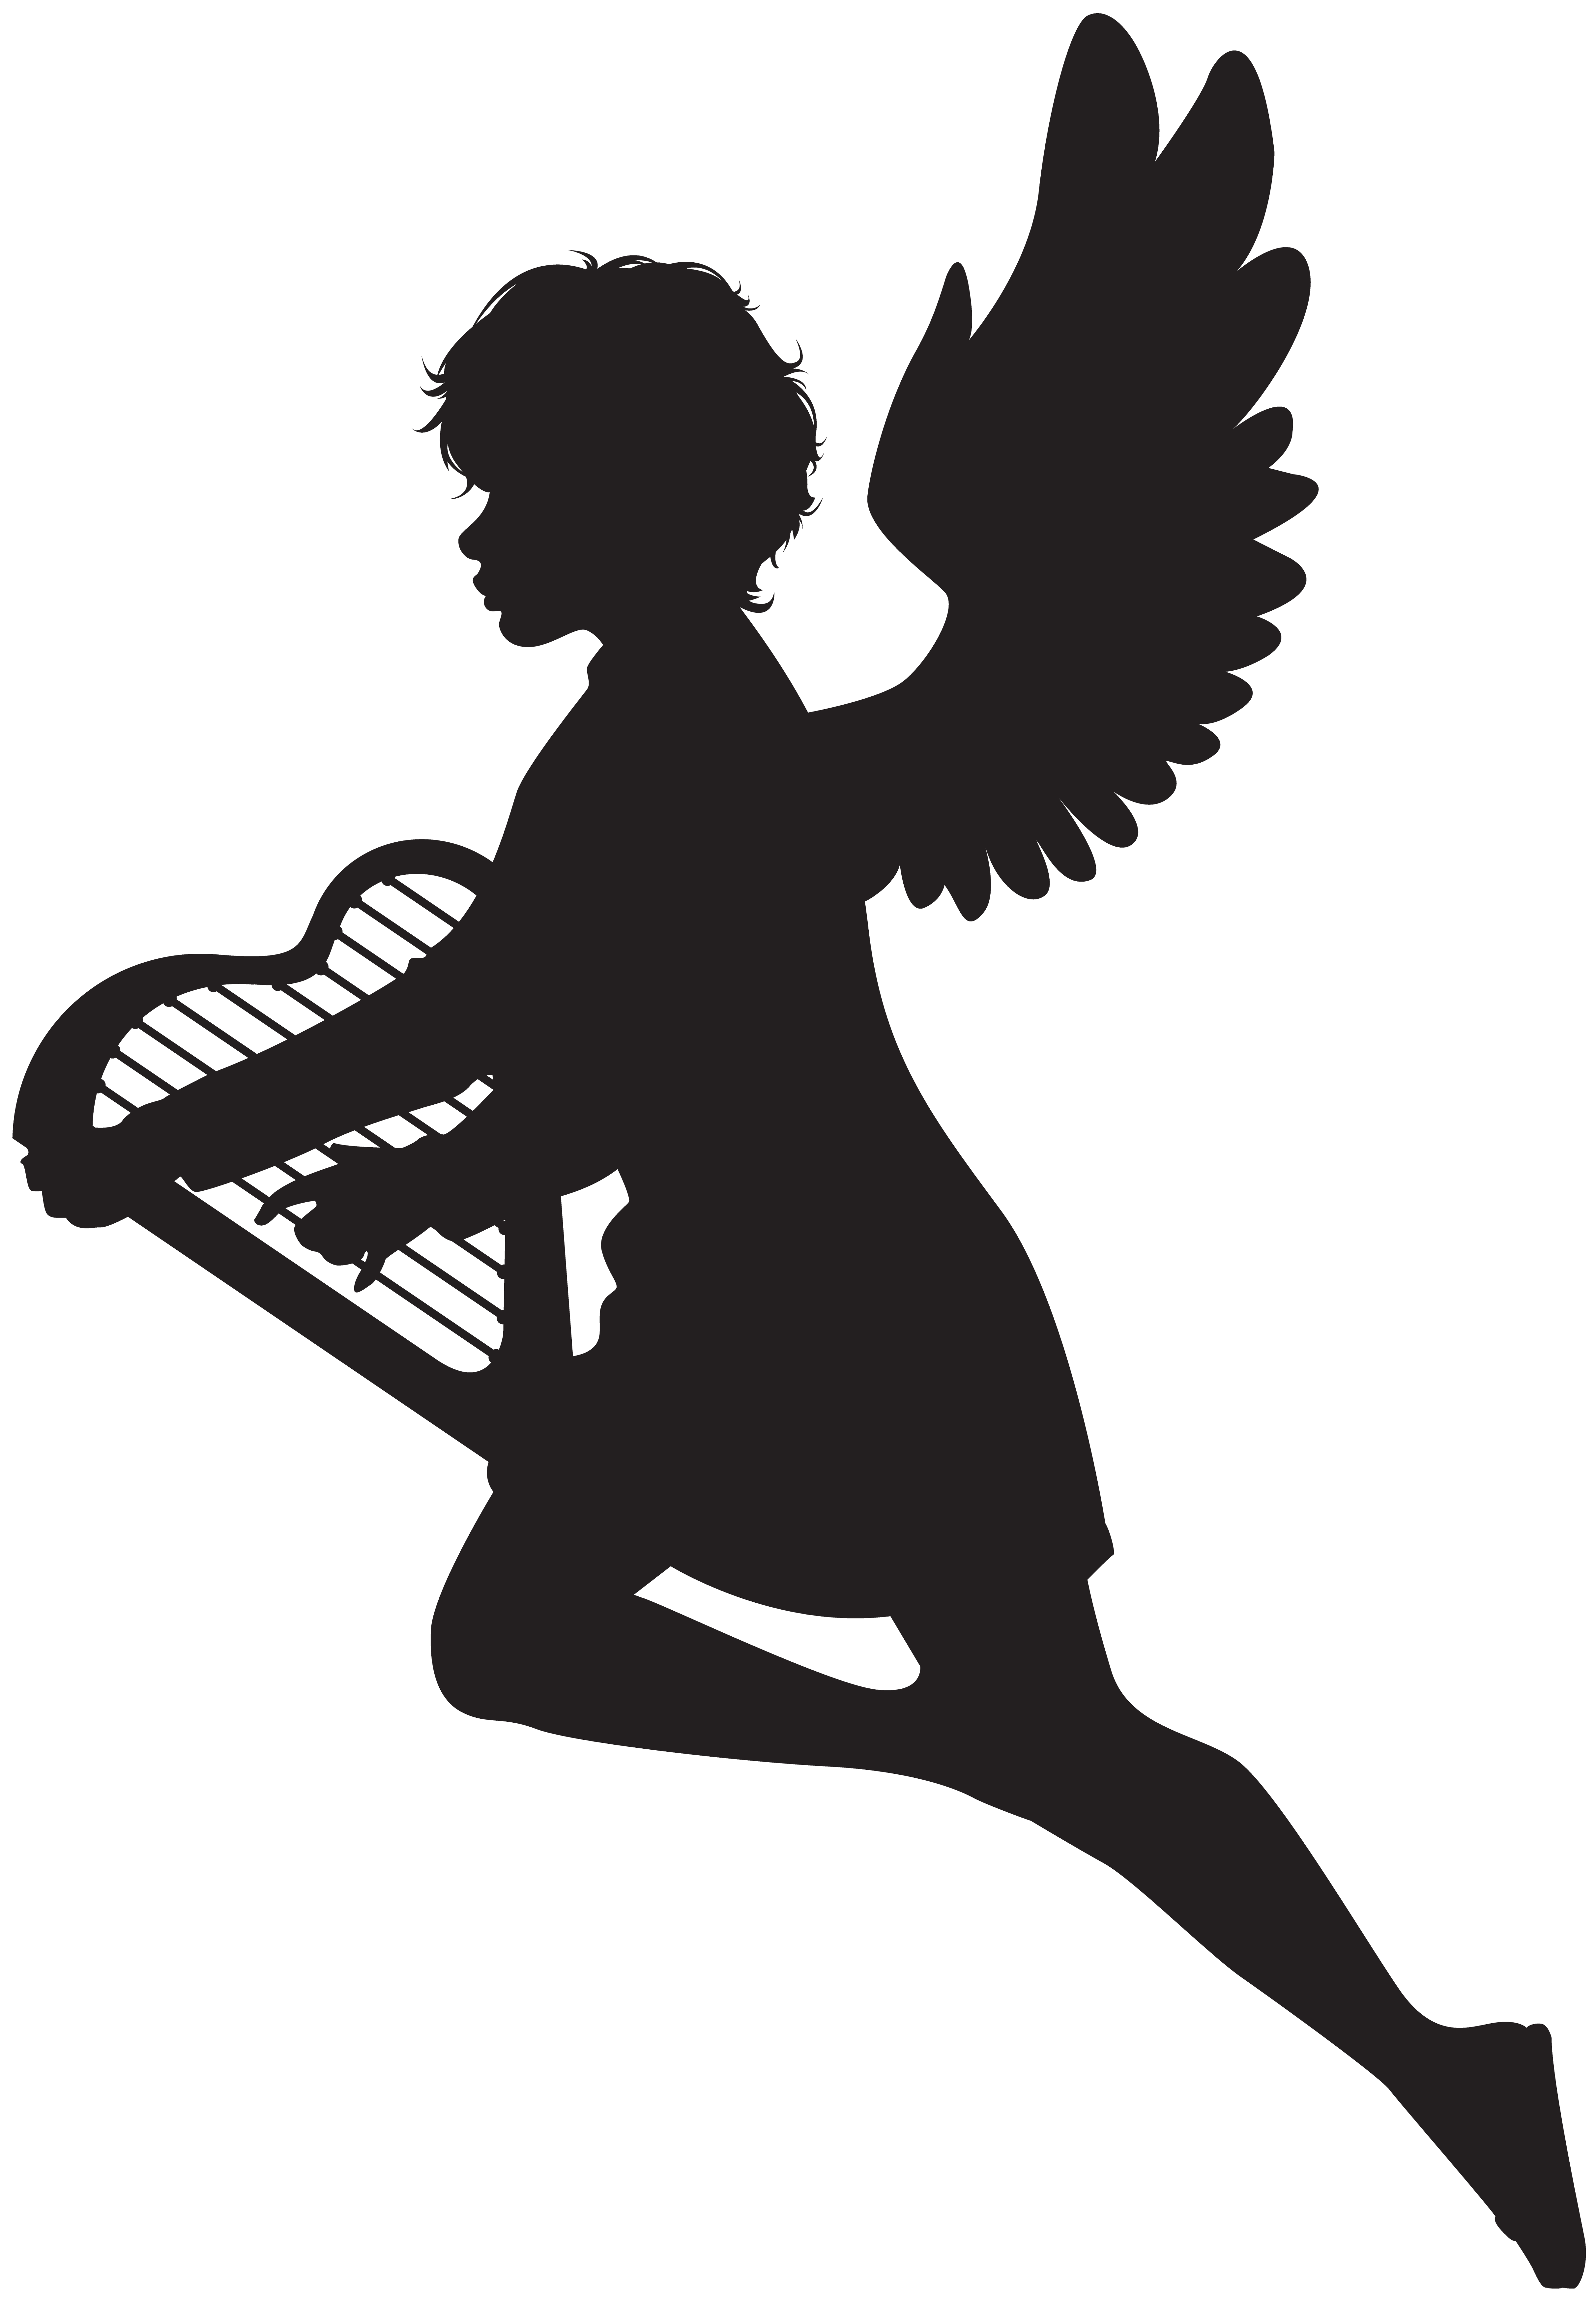 Angel with silhouette png. Harp clipart picture black and white download